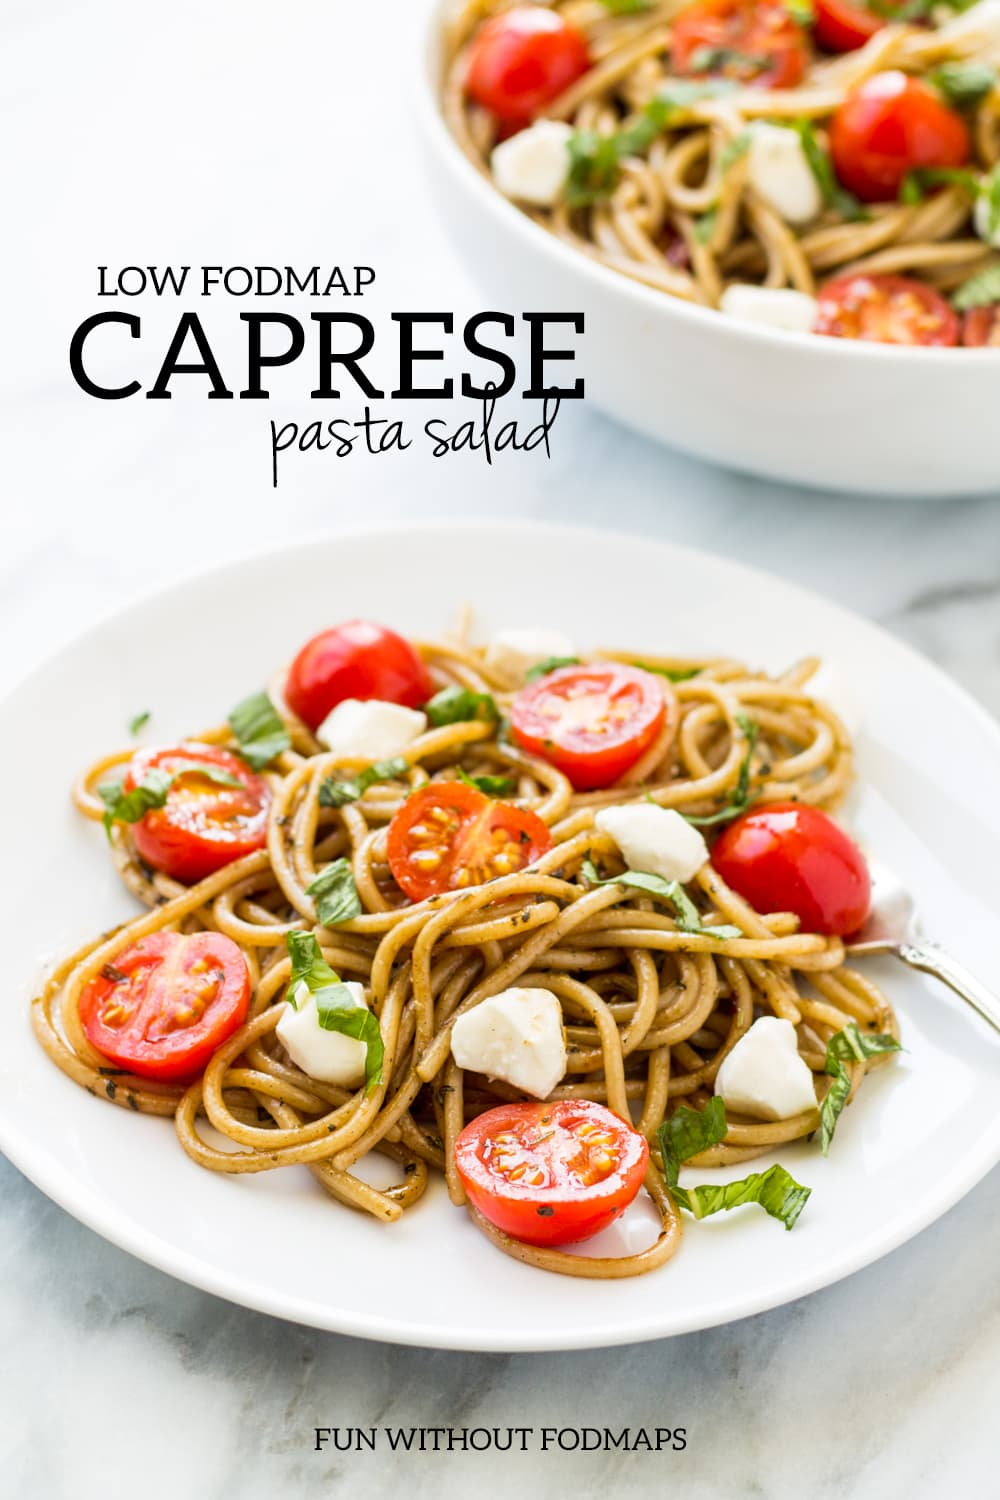 """A plate balsamic-tossed spaghetti dotted with halved cherry tomatoes, mozzarella pieces, and fresh basil. Above the plate, a black text overlay reads """"low FODMAP Caprese pasta salad."""